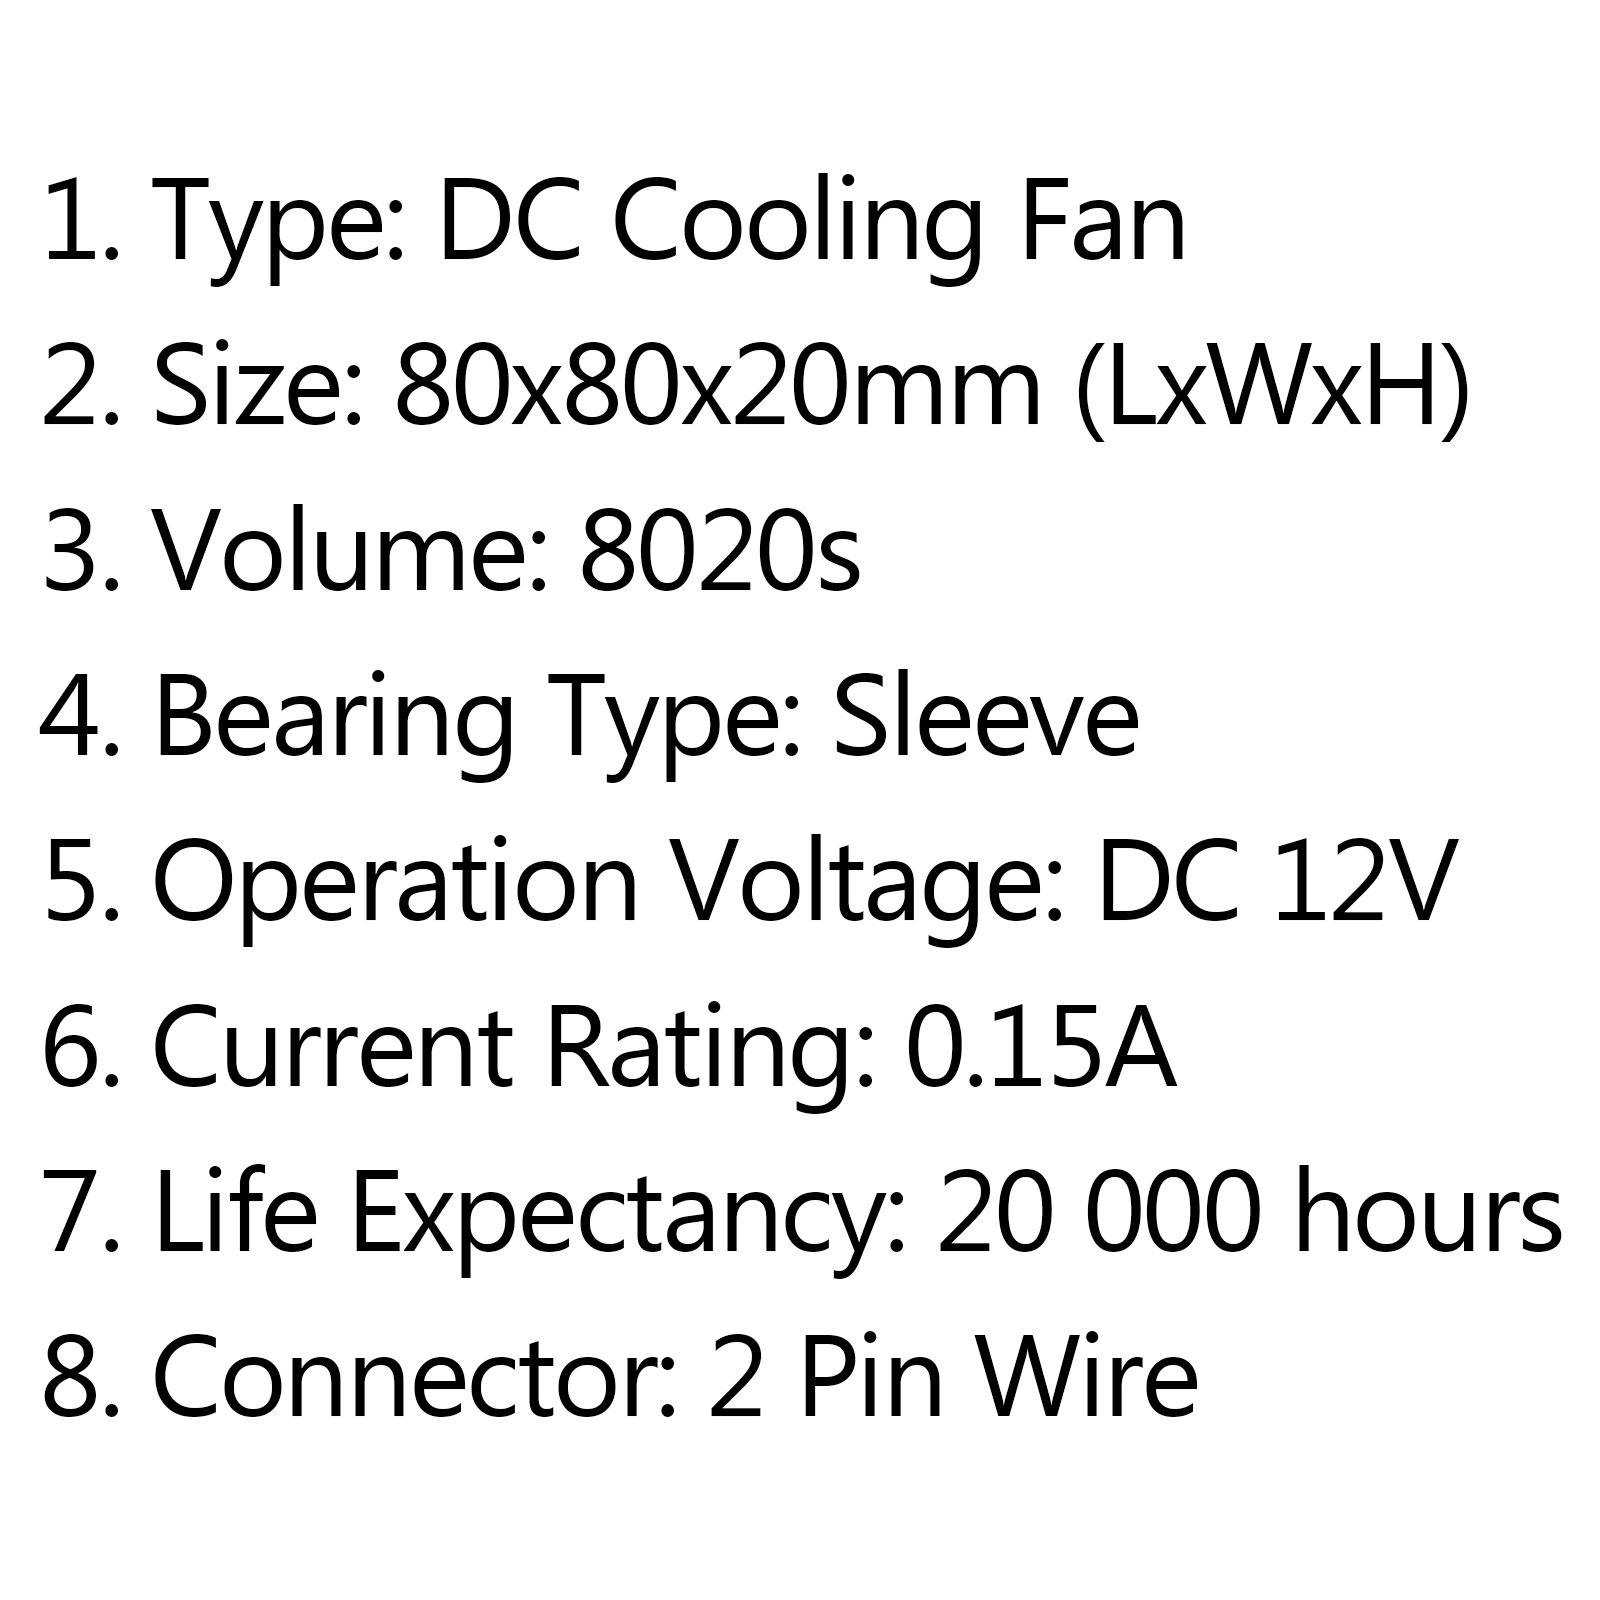 Dc brushless cooling pc computer fan 12v 8020s 80x80x20mm 015a 2 type dc cooling fan 2 size 80x80x20mm lxwxh 3 volume 8020s 4 bearing type sleeve 5 operation voltage dc 12v 6 current rating 015a greentooth Choice Image